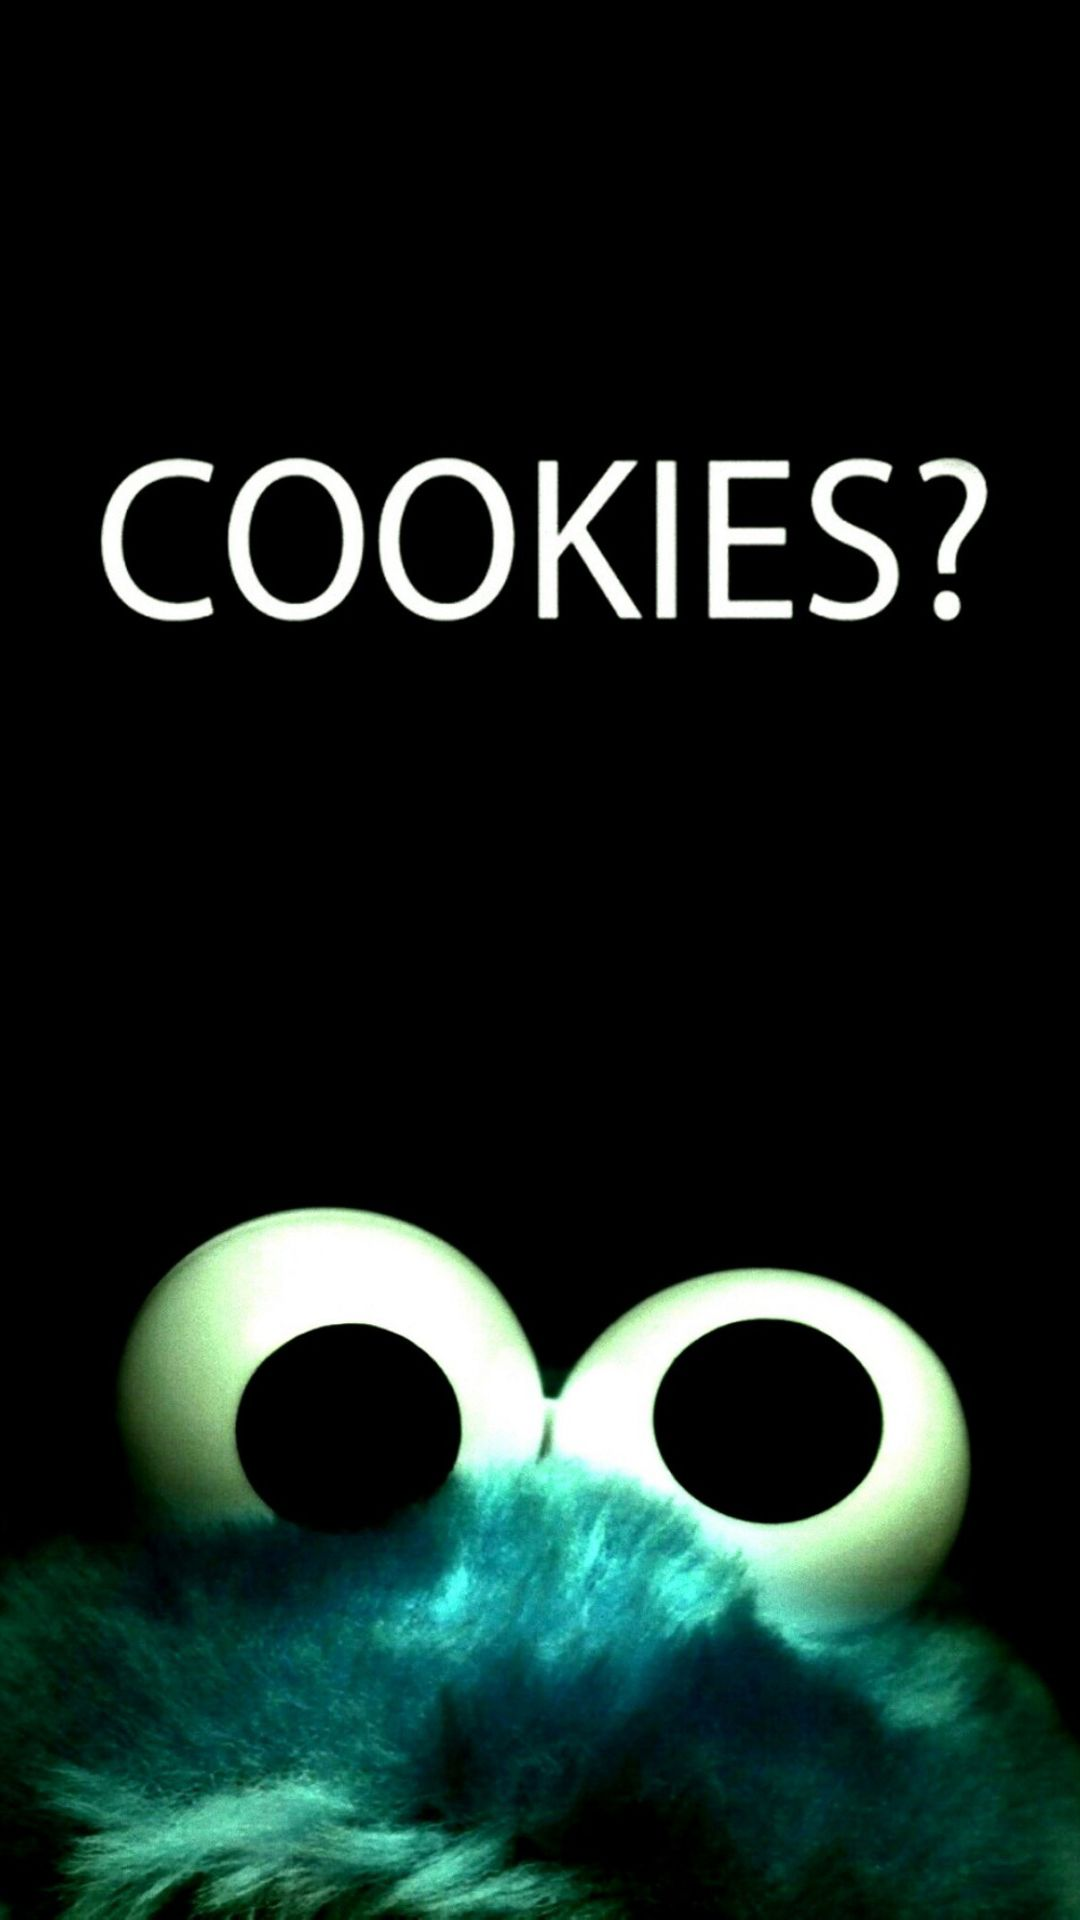 Cookies Cookie Monster iPhone 6 Plus HD Wallpaper iPod Wallpaper